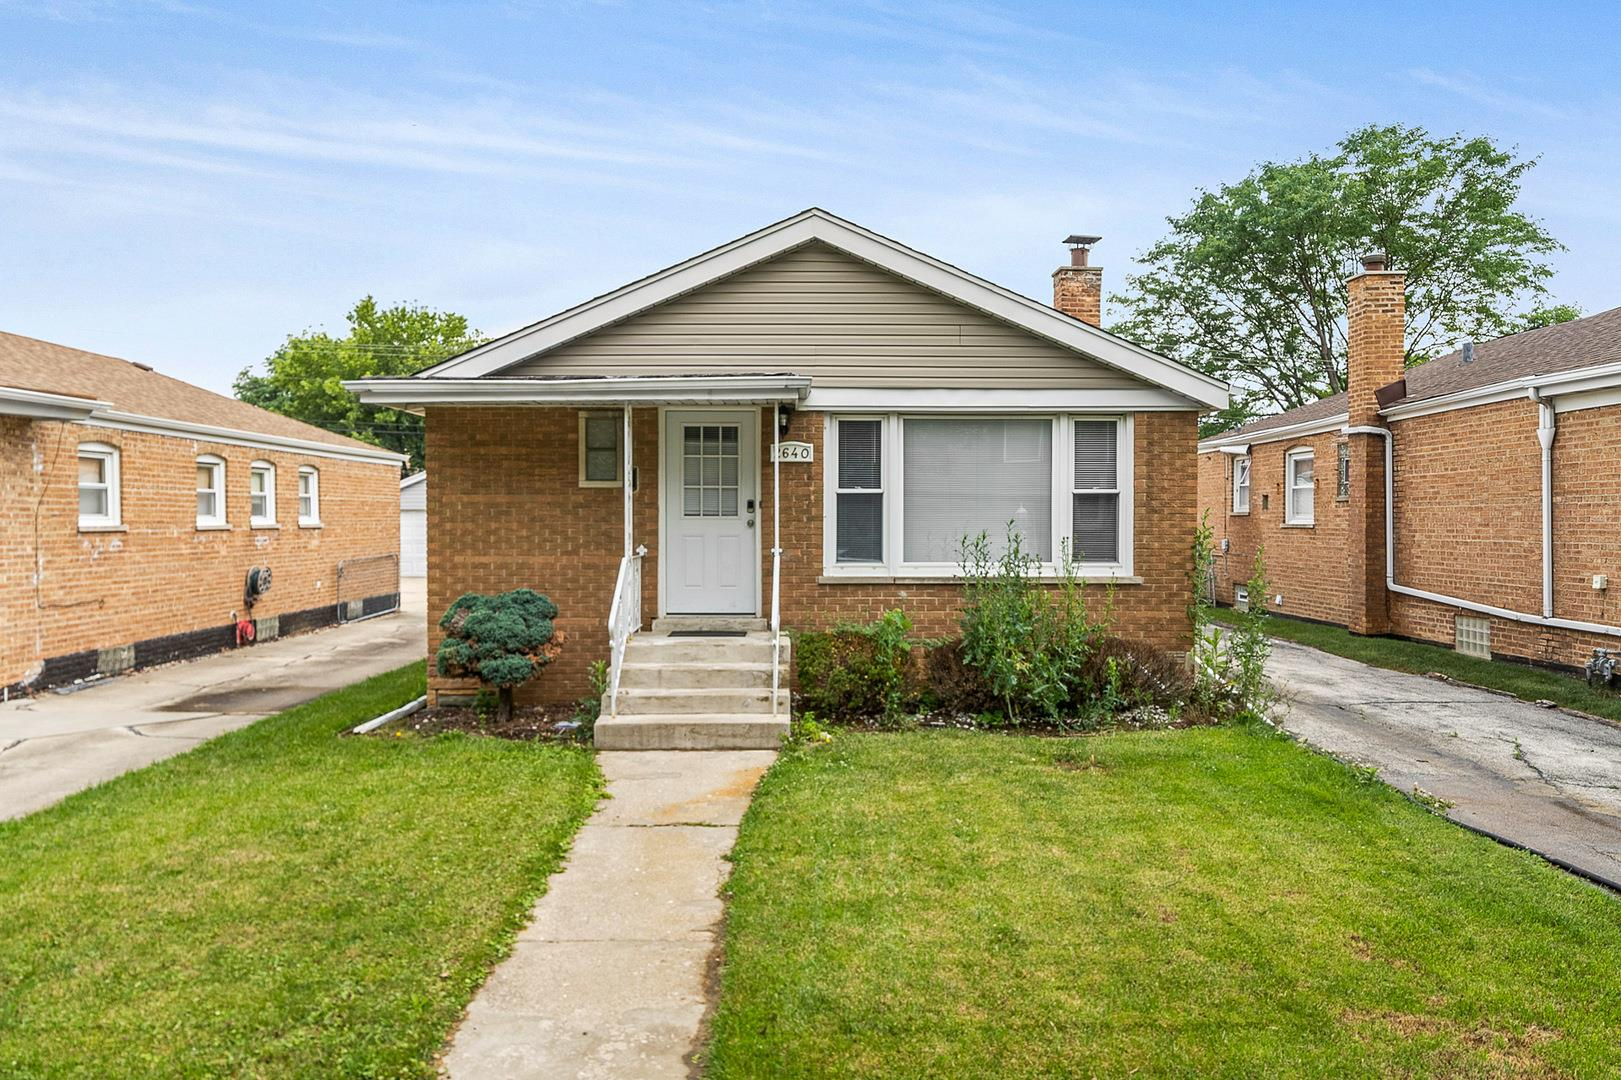 2640 W 94th Place, Evergreen Park, IL 60805 - #: 11142531